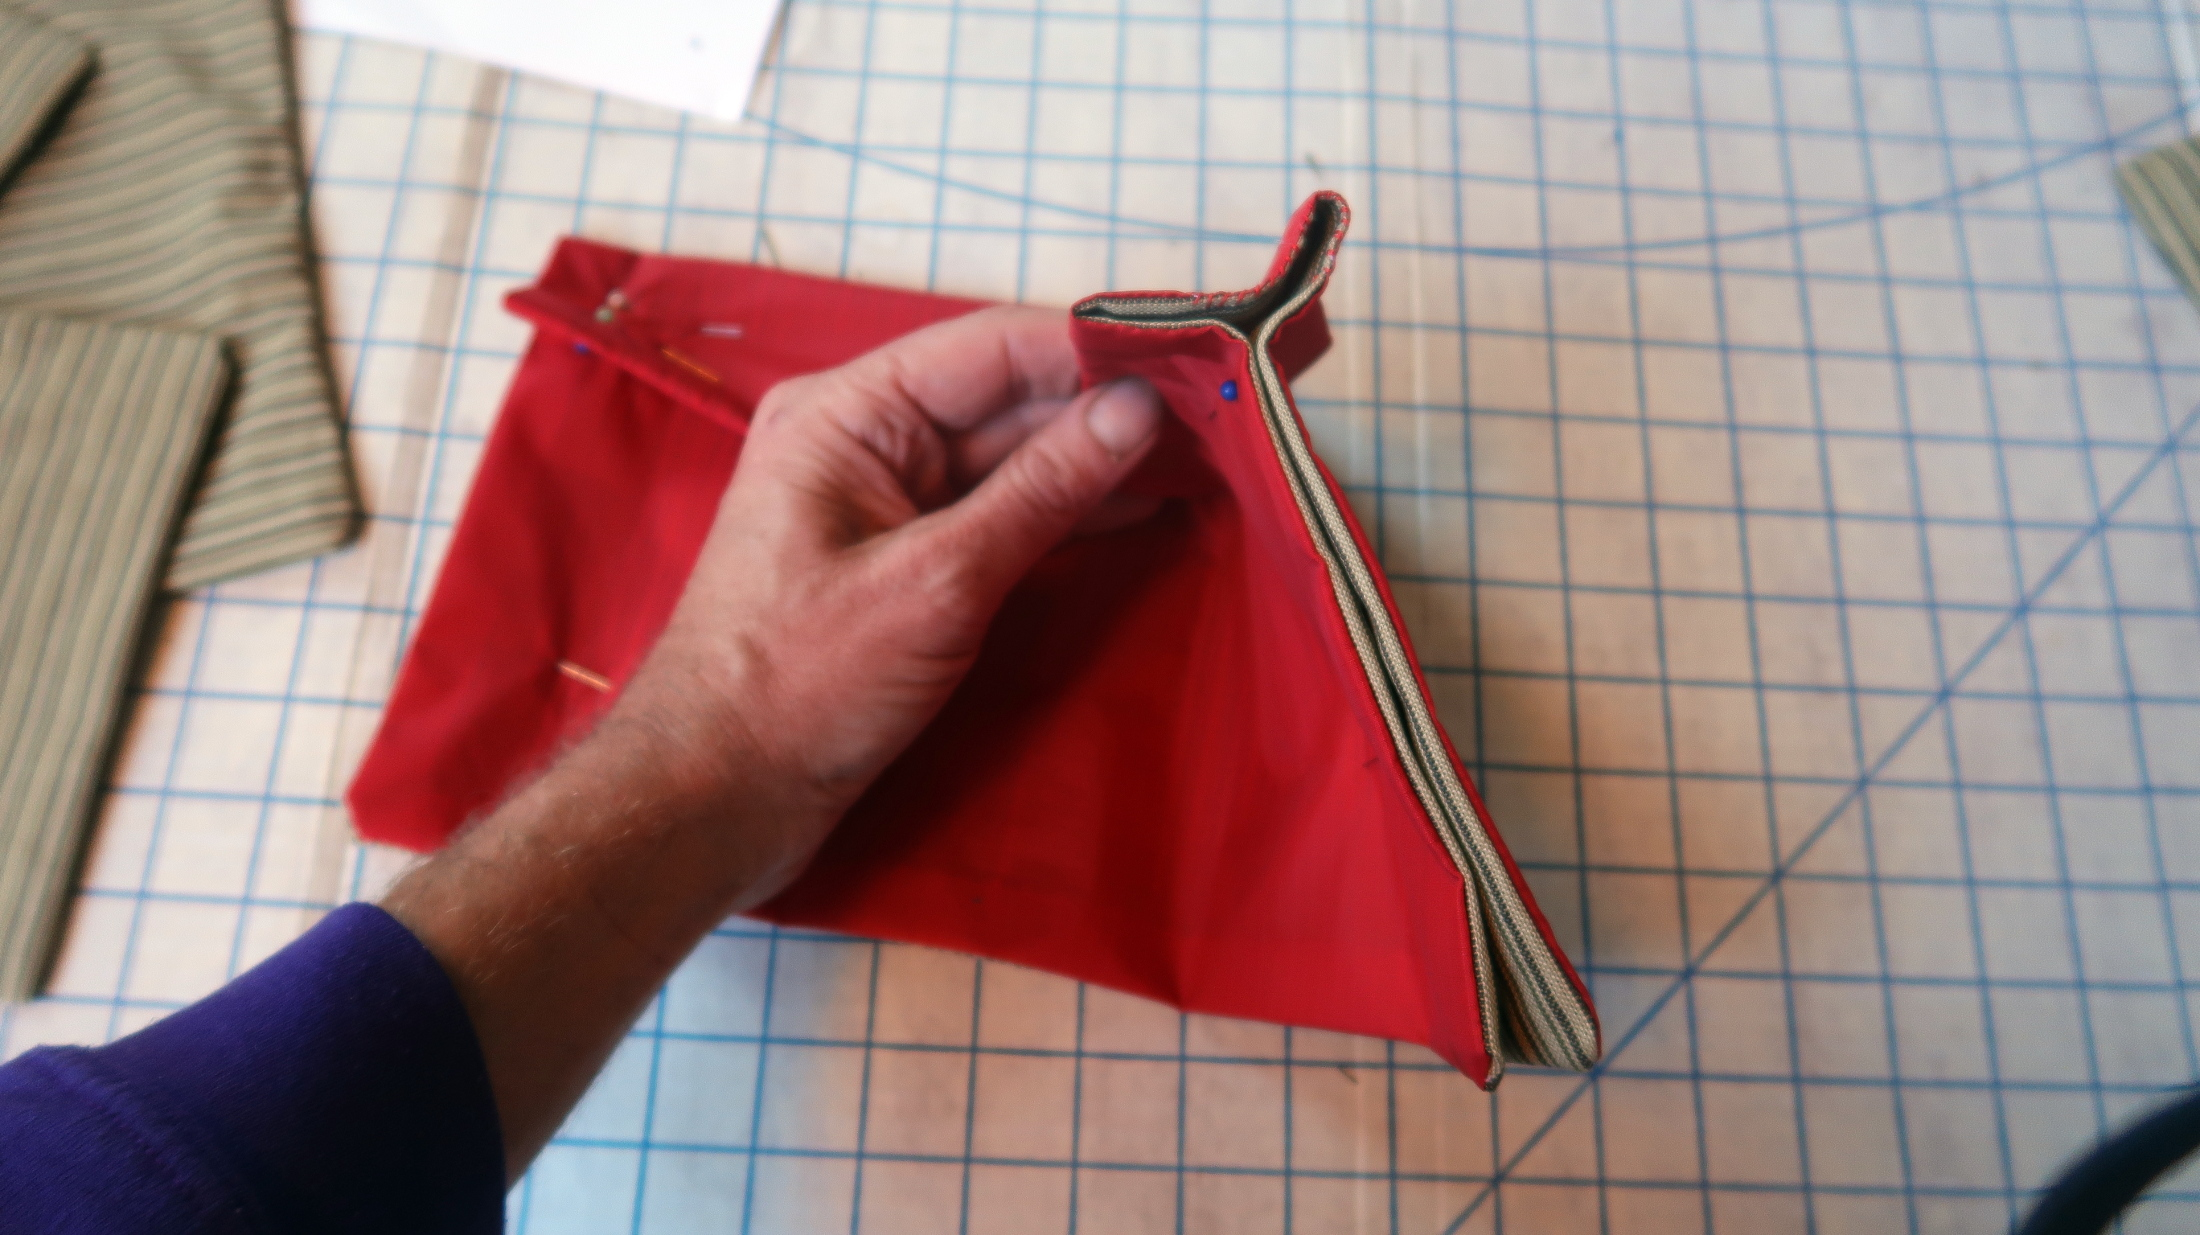 Making the pouch